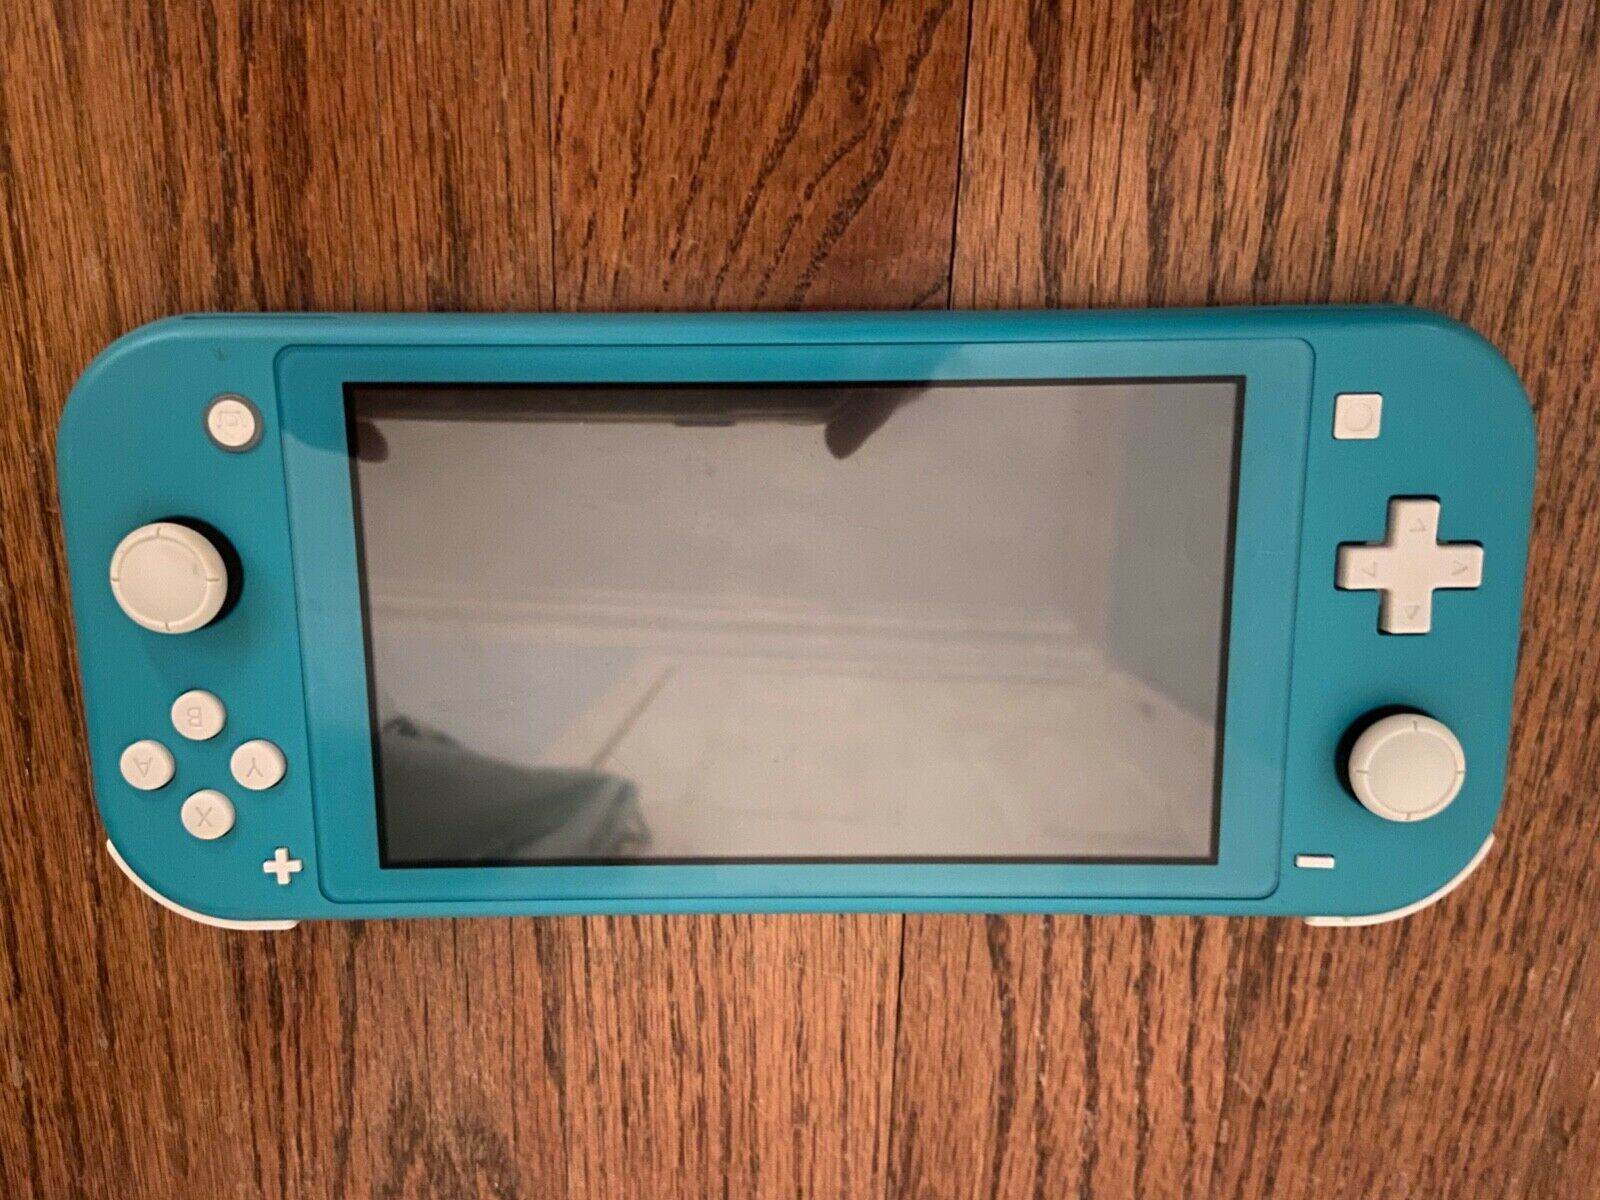 Nintendo Switch Lite Handheld Console - Turquoise Good Condition, No Charger  - $150.00